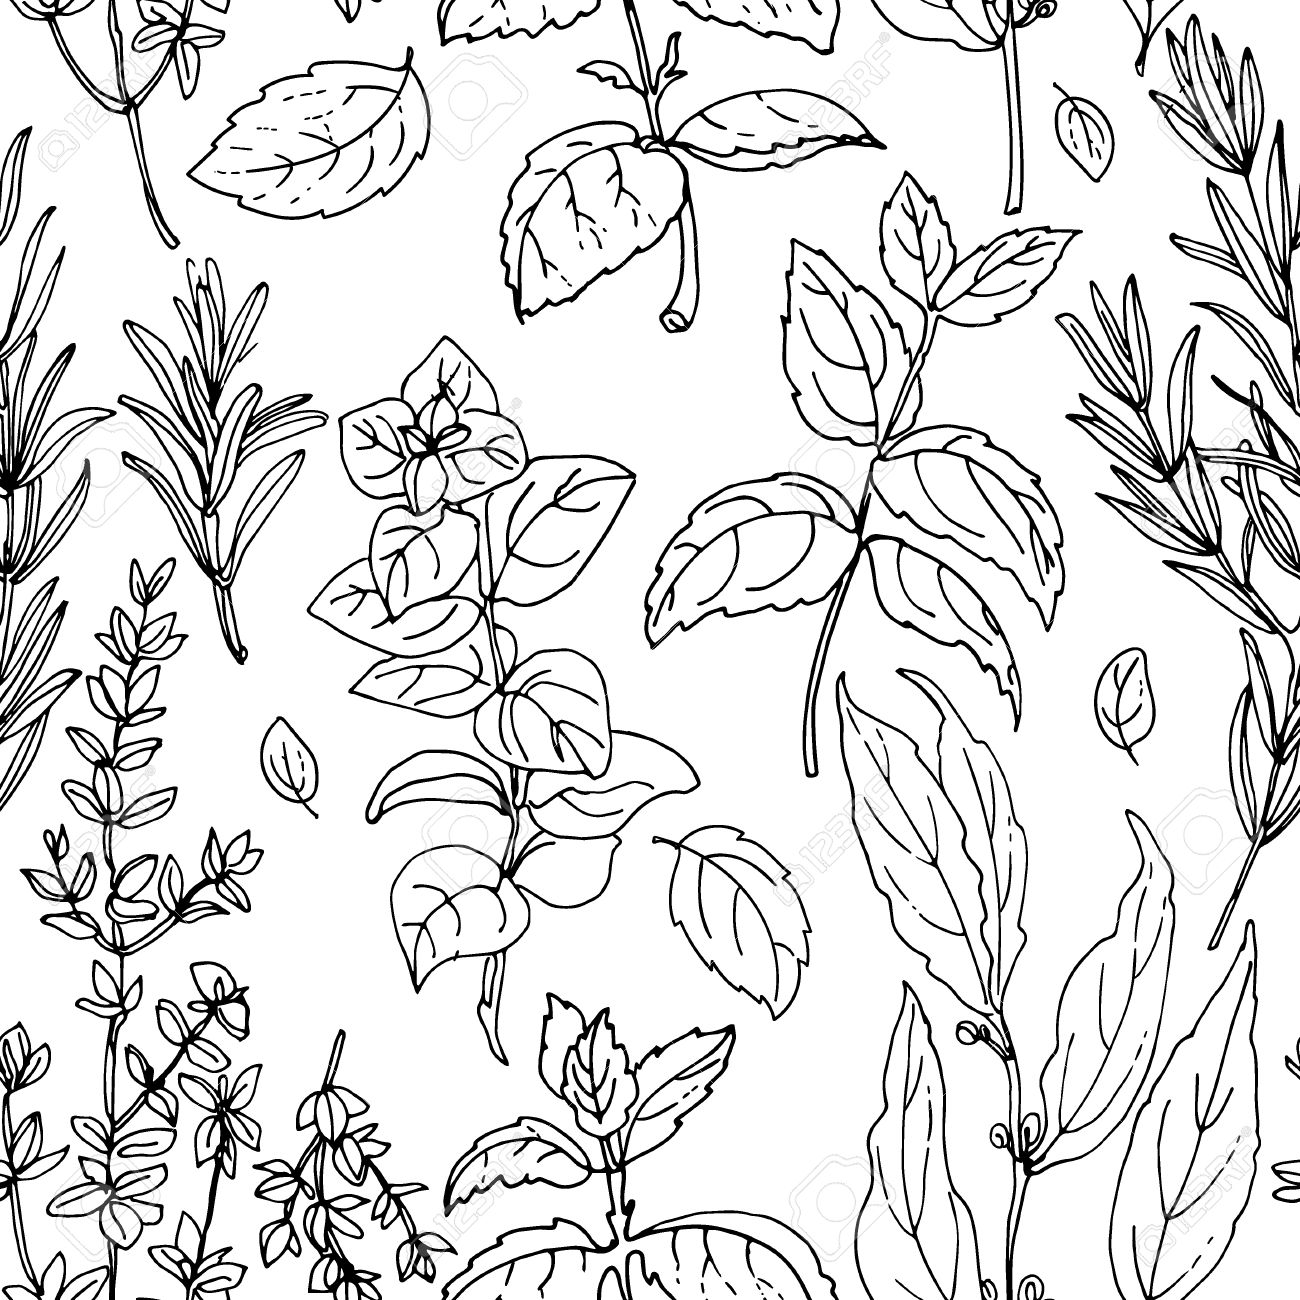 Pattern herbs. Spices. Italian herb drawn black lines on a white background. Vector illustration. Basil, Parsley, Rosemary, Sage, Bay, Thyme, Oregano, Mint - 54521548